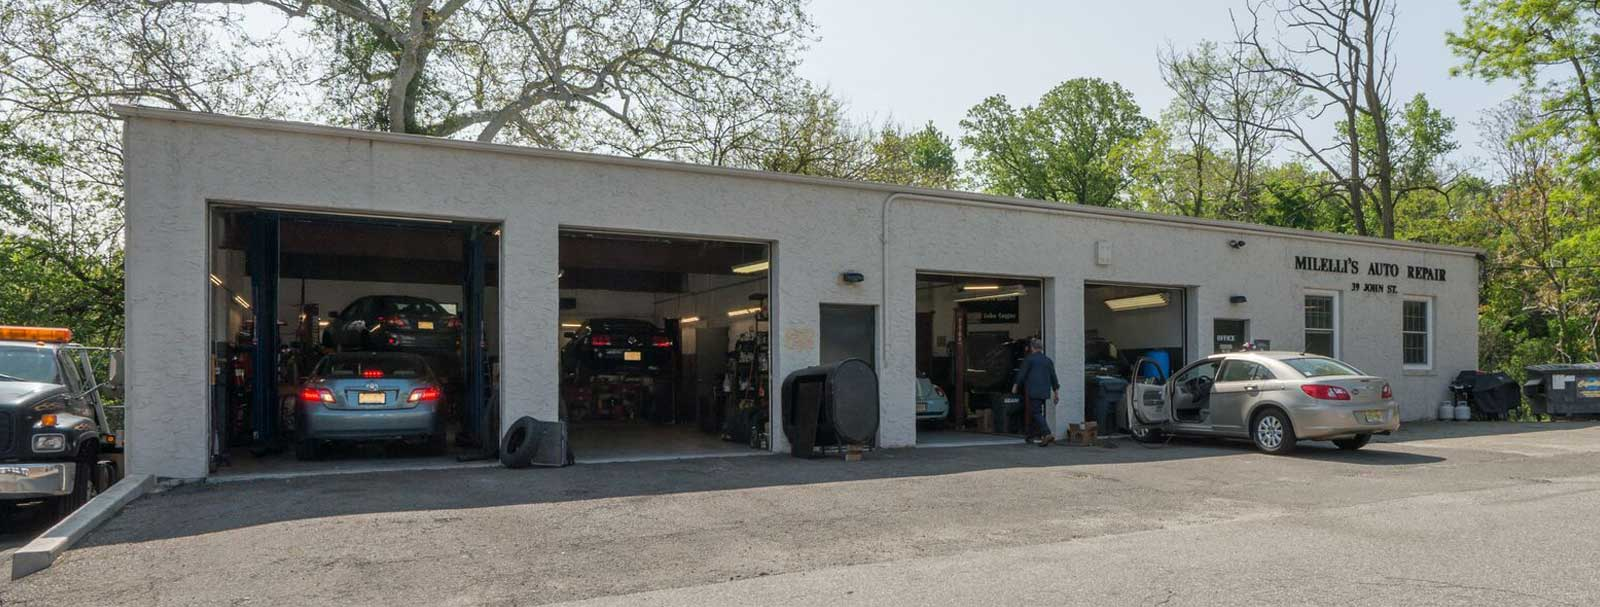 Milelli's Auto Repair & Towing in Morristown, NJ